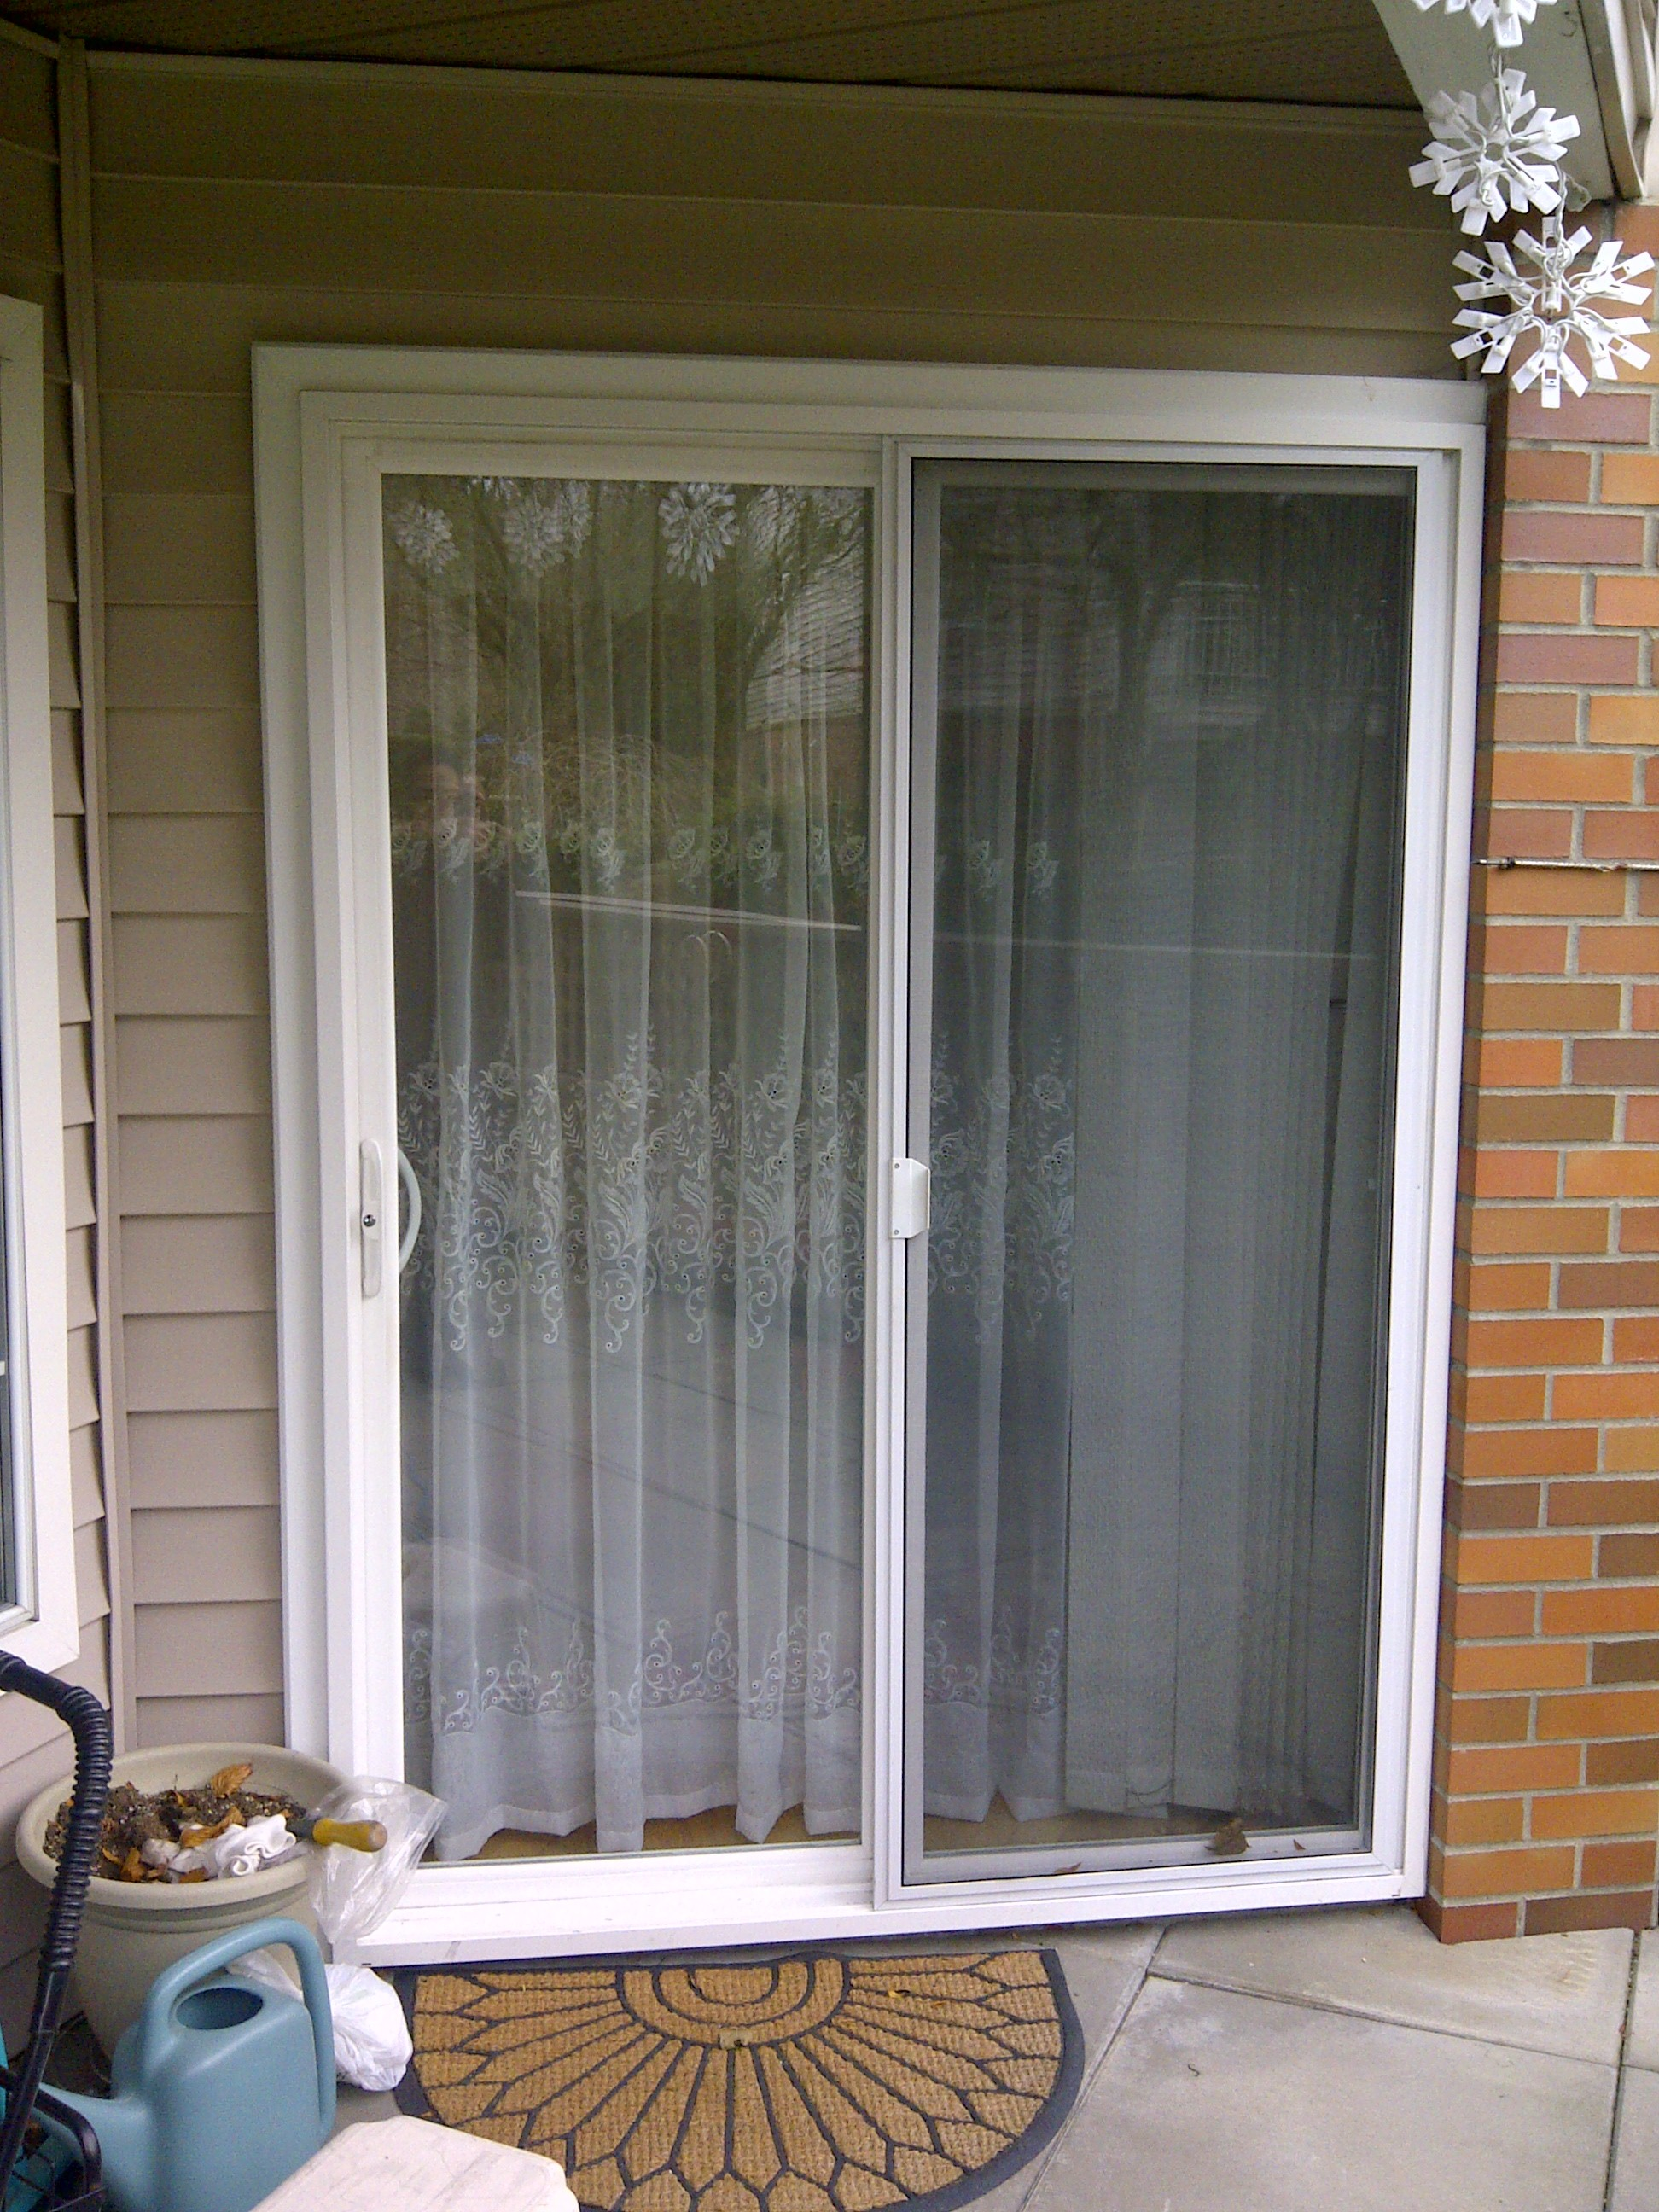 Commercial glass canopy repair in vancouver b c for Sliding glass front door